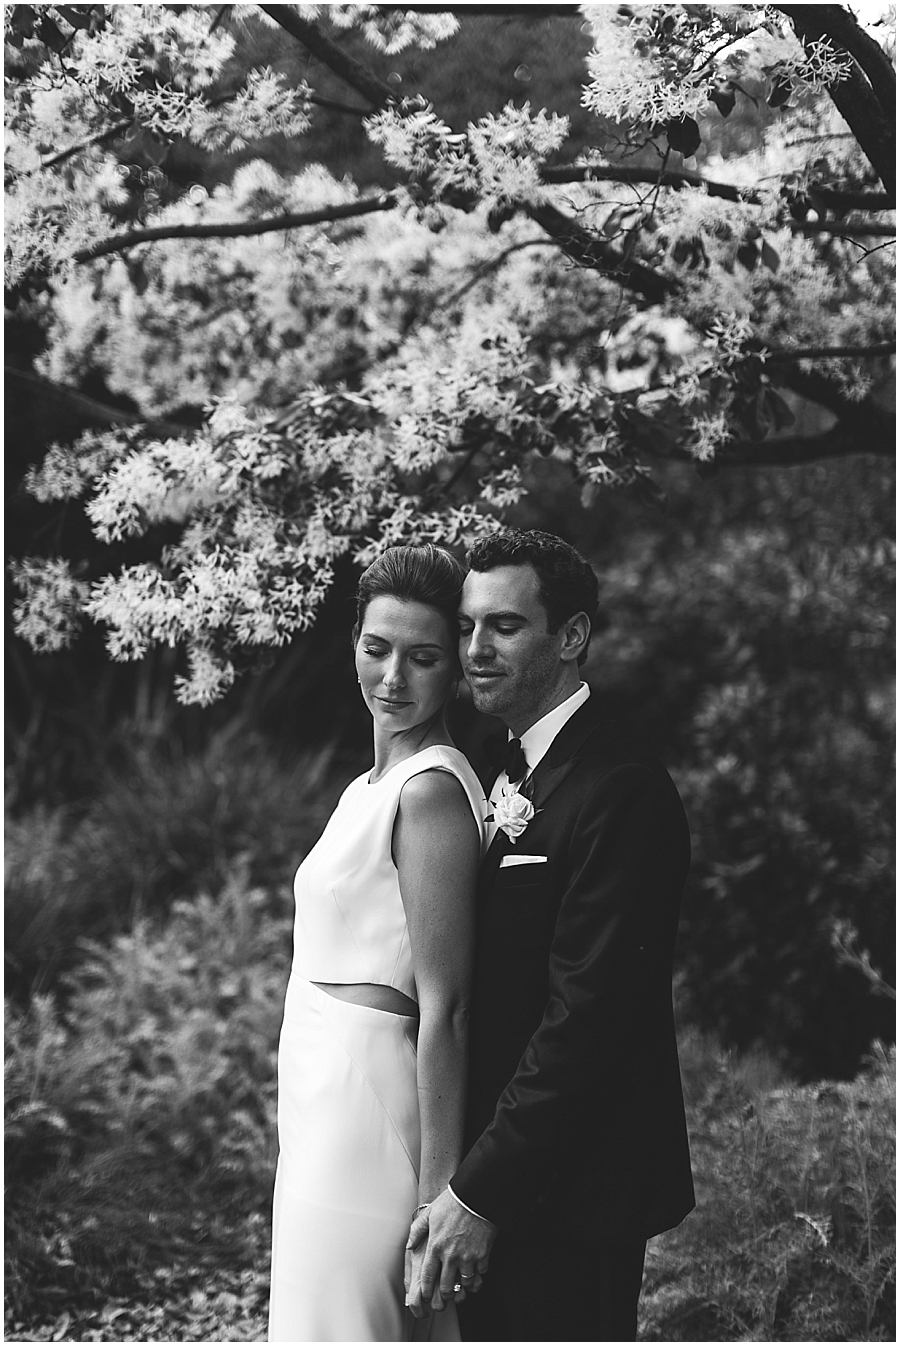 Tom+Kate_stevecowellphoto_0037.jpg